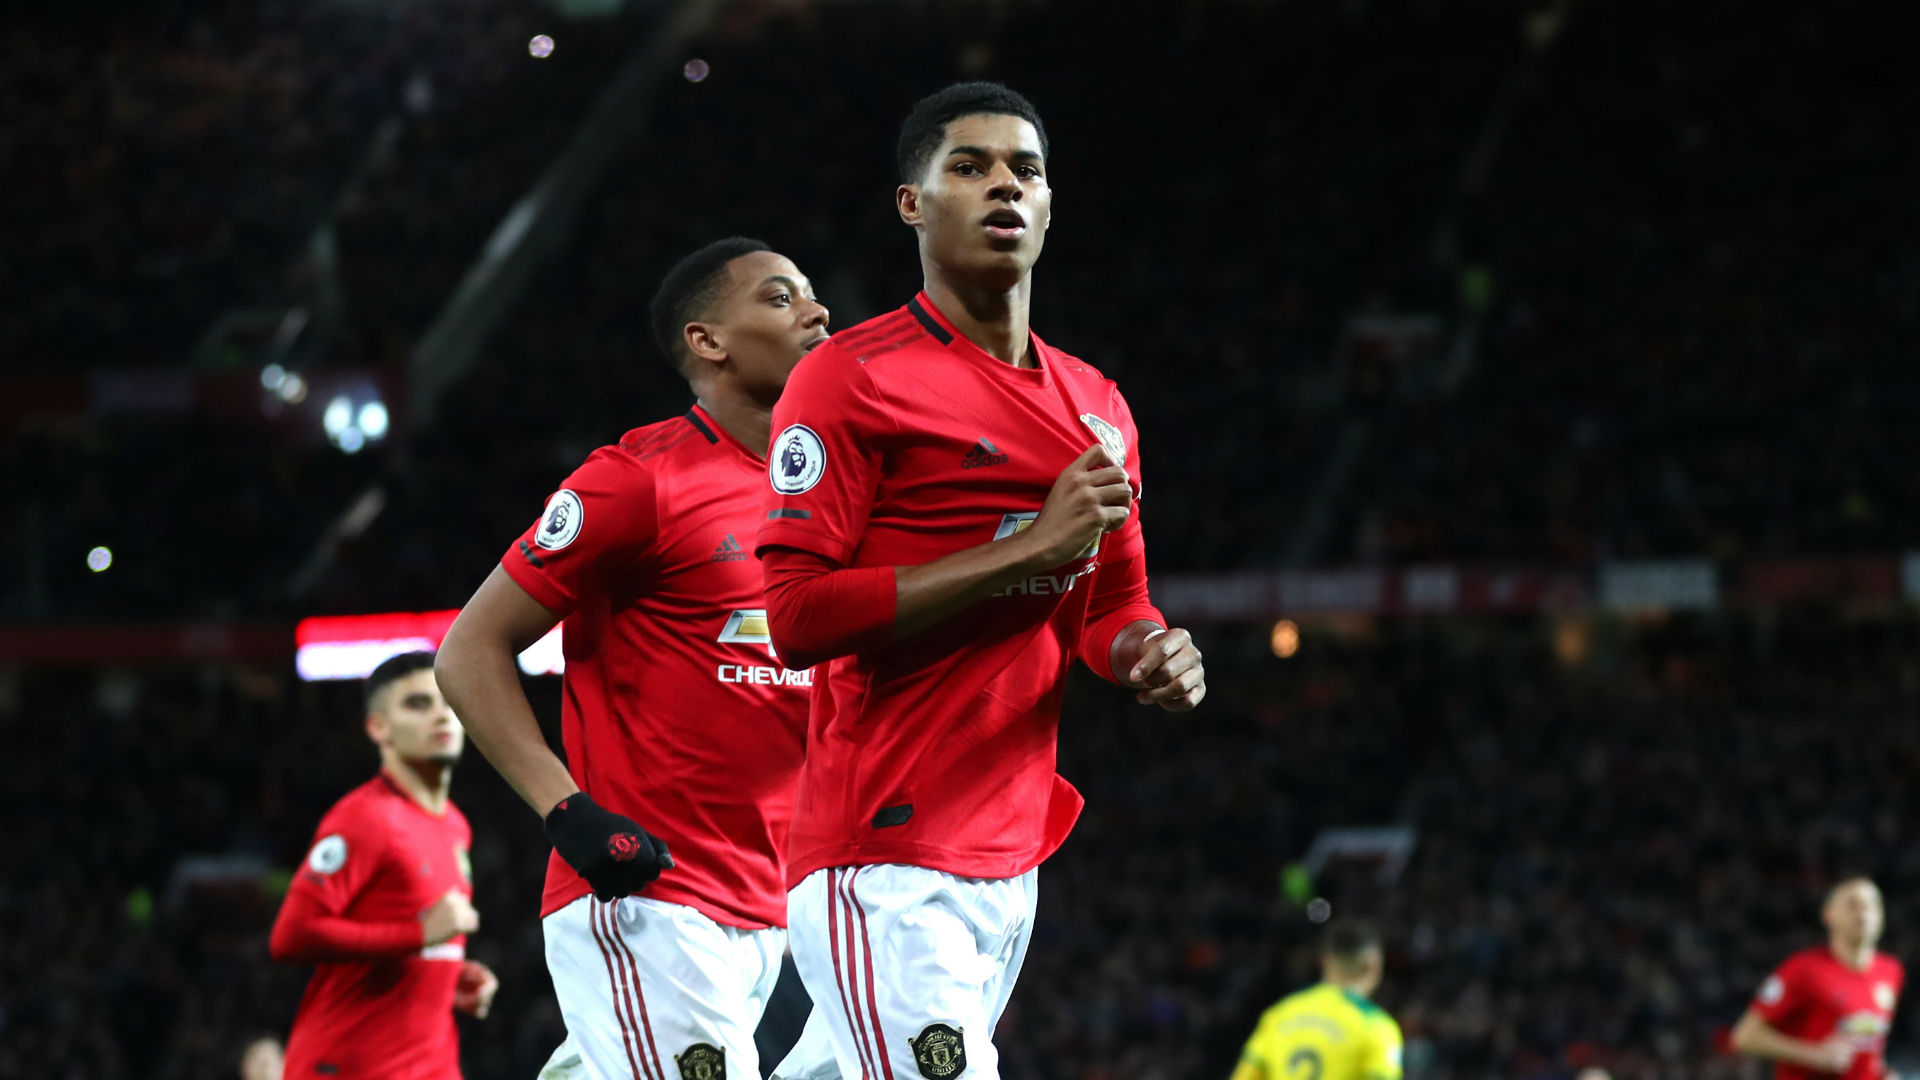 Rashford can be one of the best players in the world - Matic